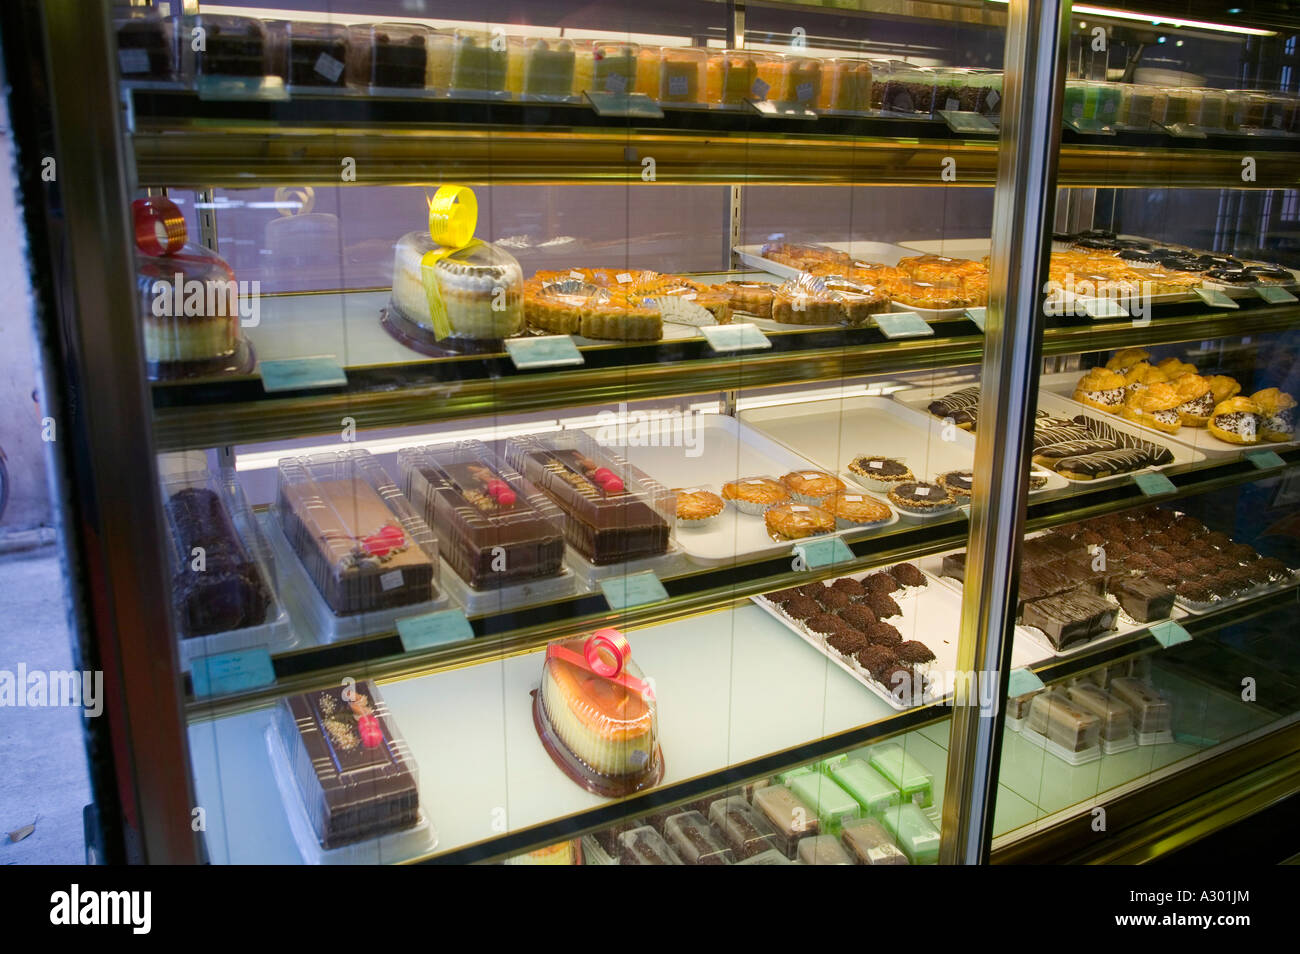 Bakery Display Cabinet A Display Cabinet Full Of Pastries In A Fancy Pastry Shop In